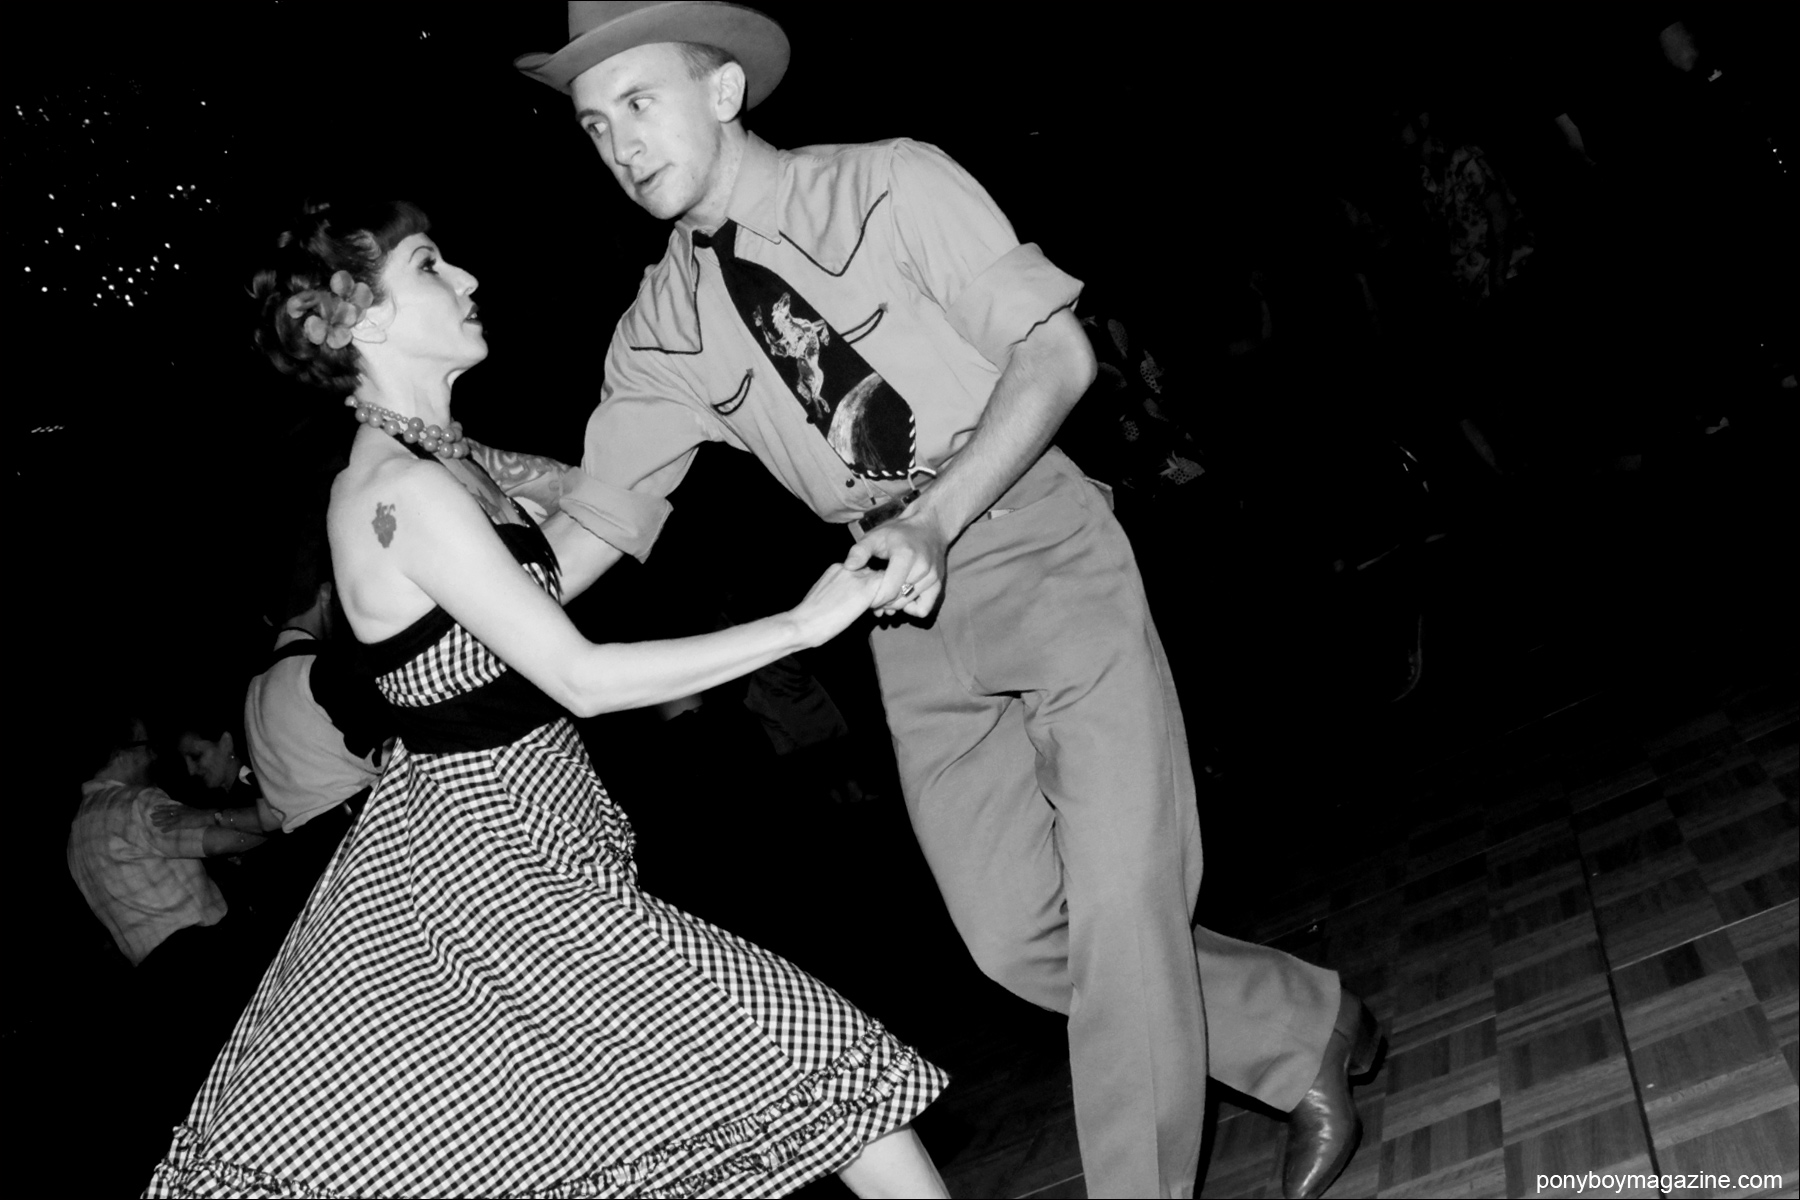 A rockabilly couple on the dance floor at Tom Ingram's annual Viva Las Vegas 4 day weekender. Photograph by Alexander Thompson for Ponyboy Magazine.